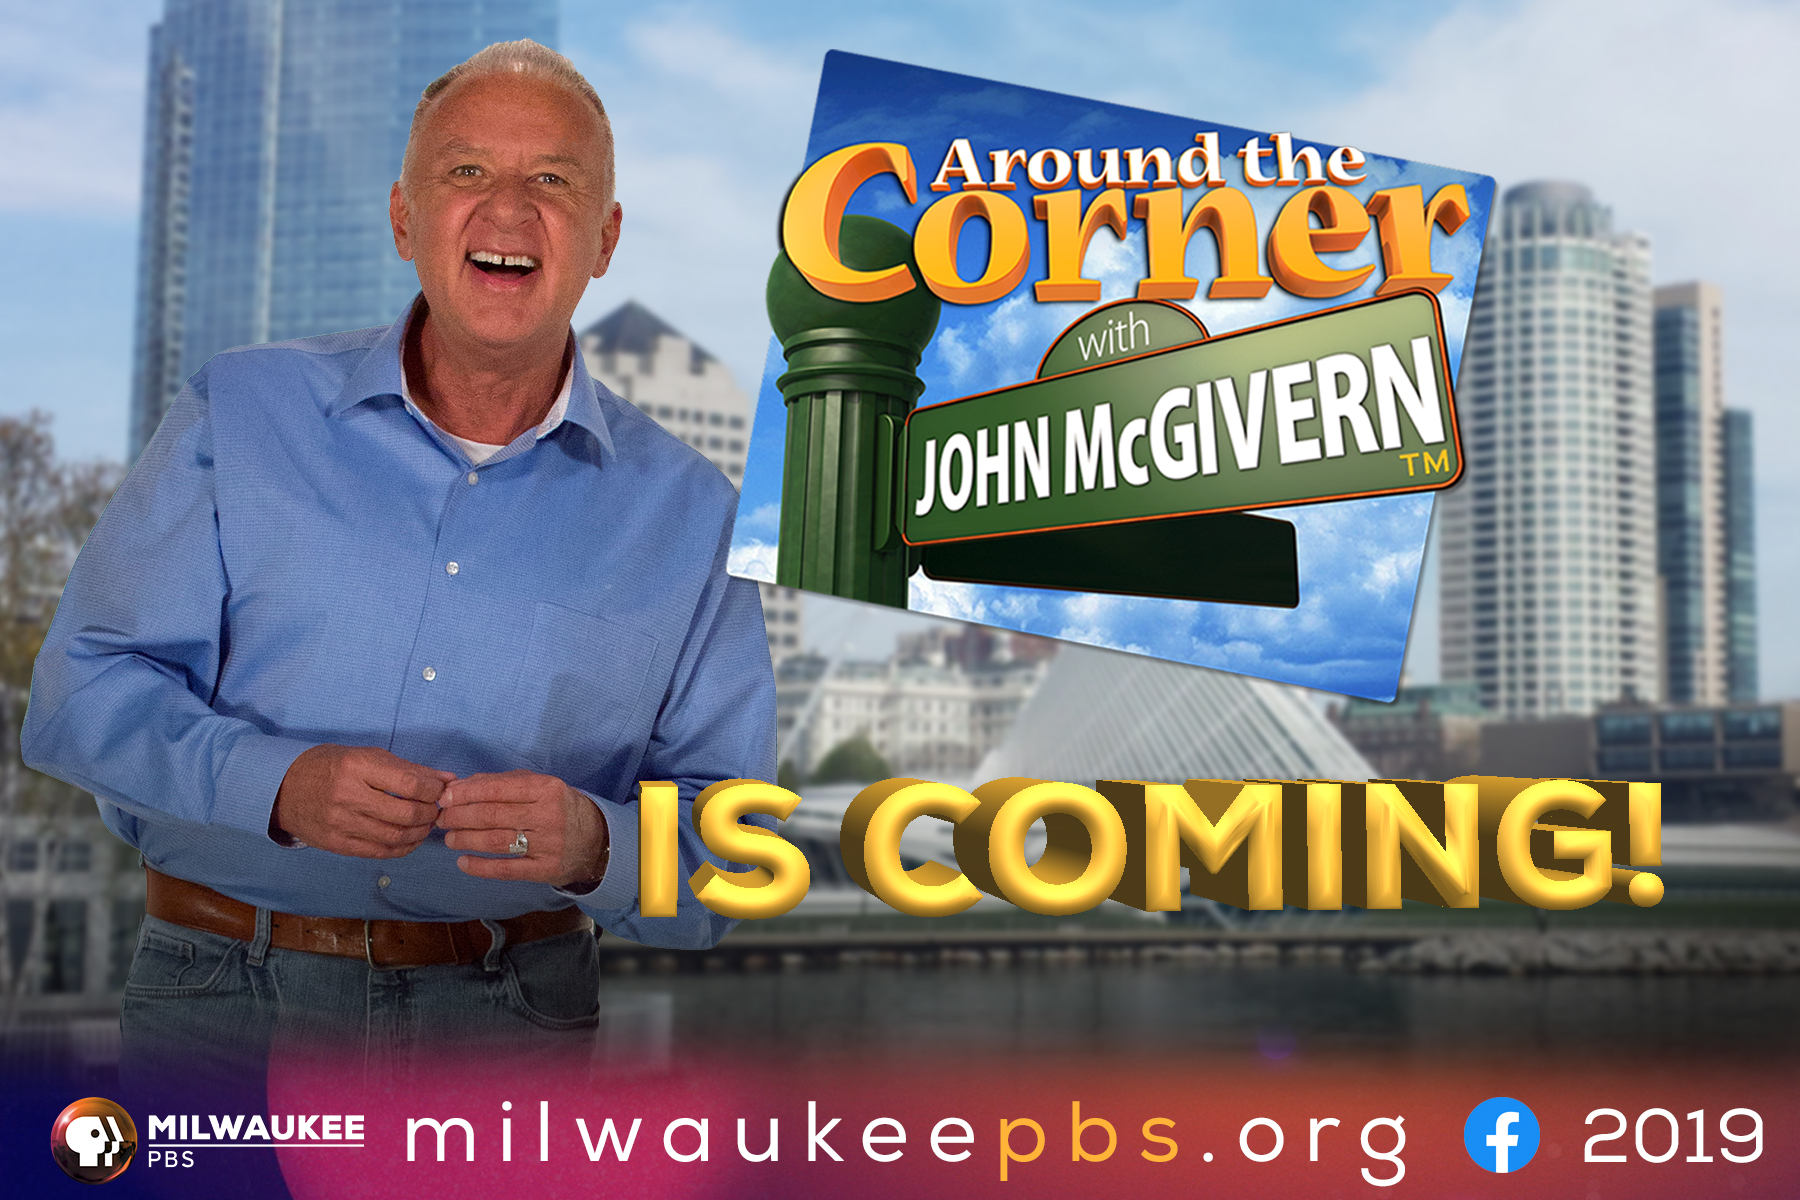 Around the Corner with John McGivern at Dodge County Fair